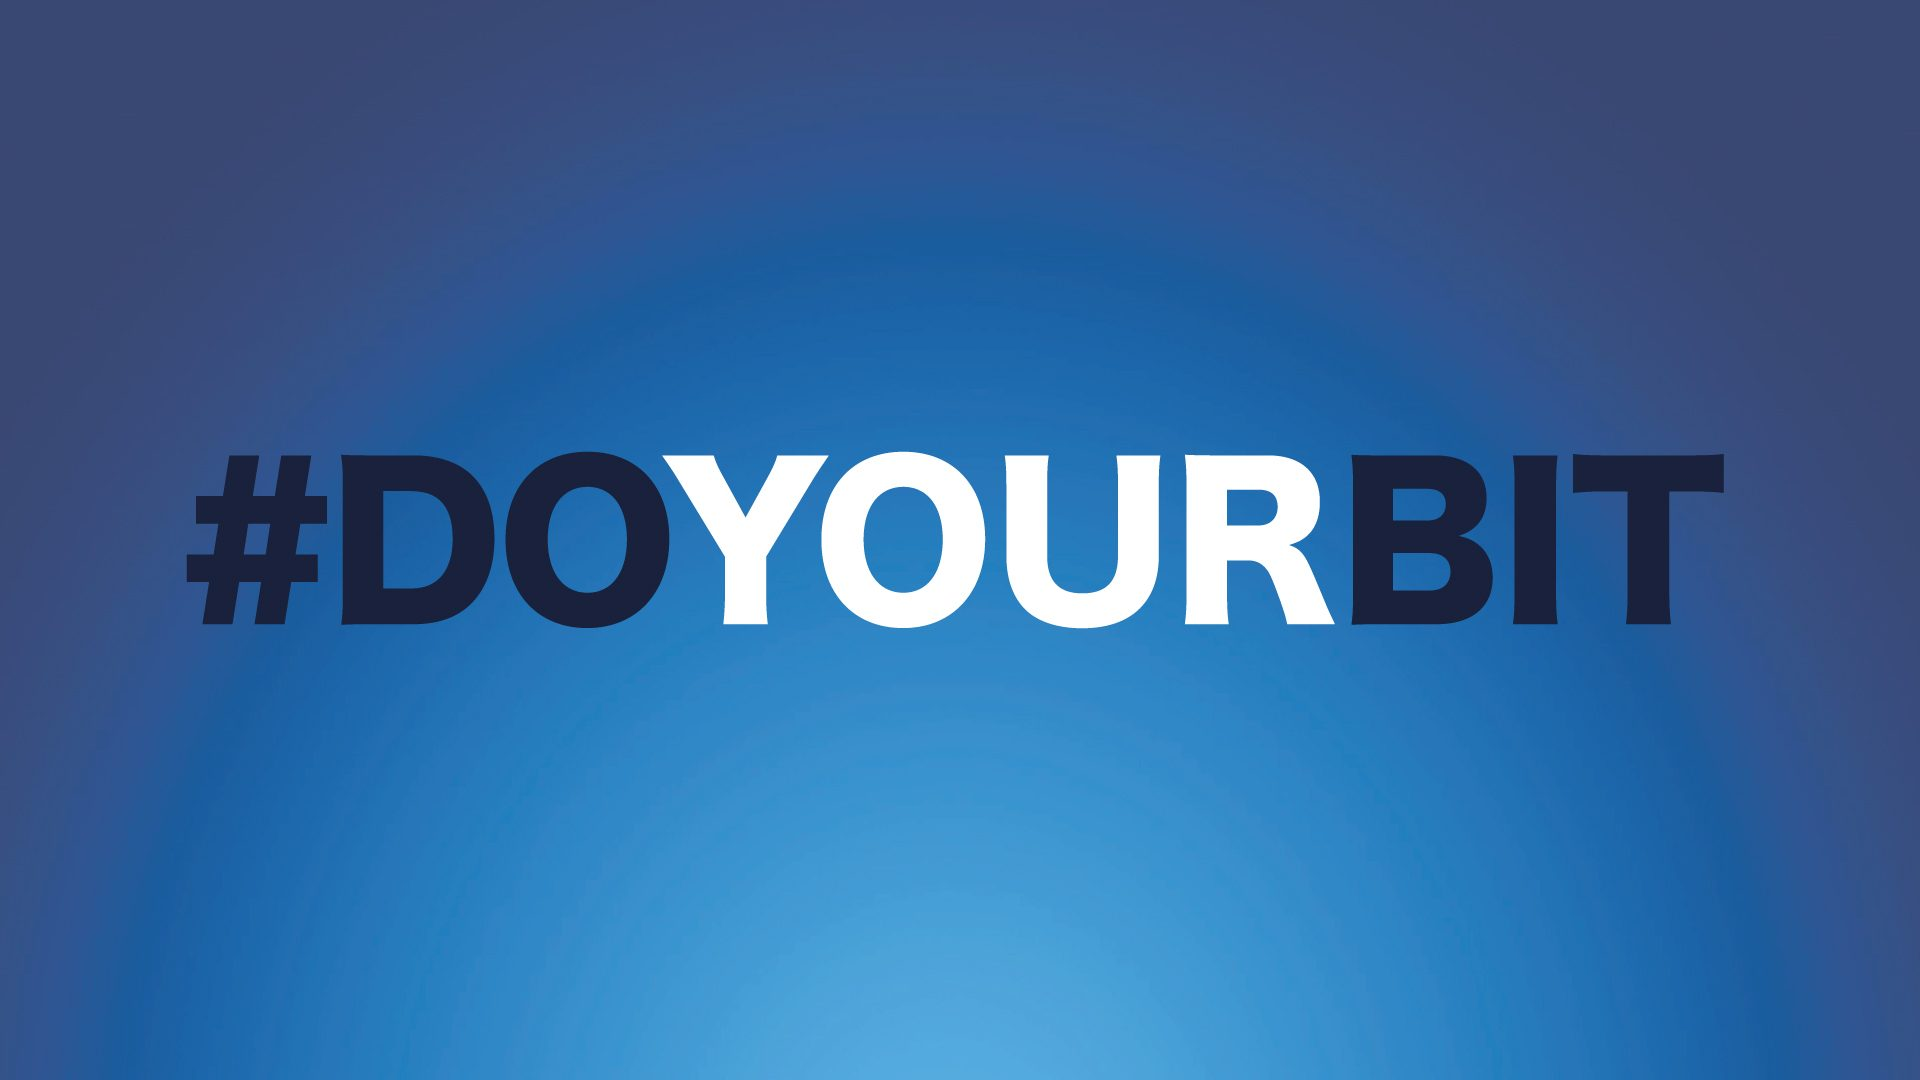 Public urged to #DoYourBit by staying safe and sensible as restrictions start to ease